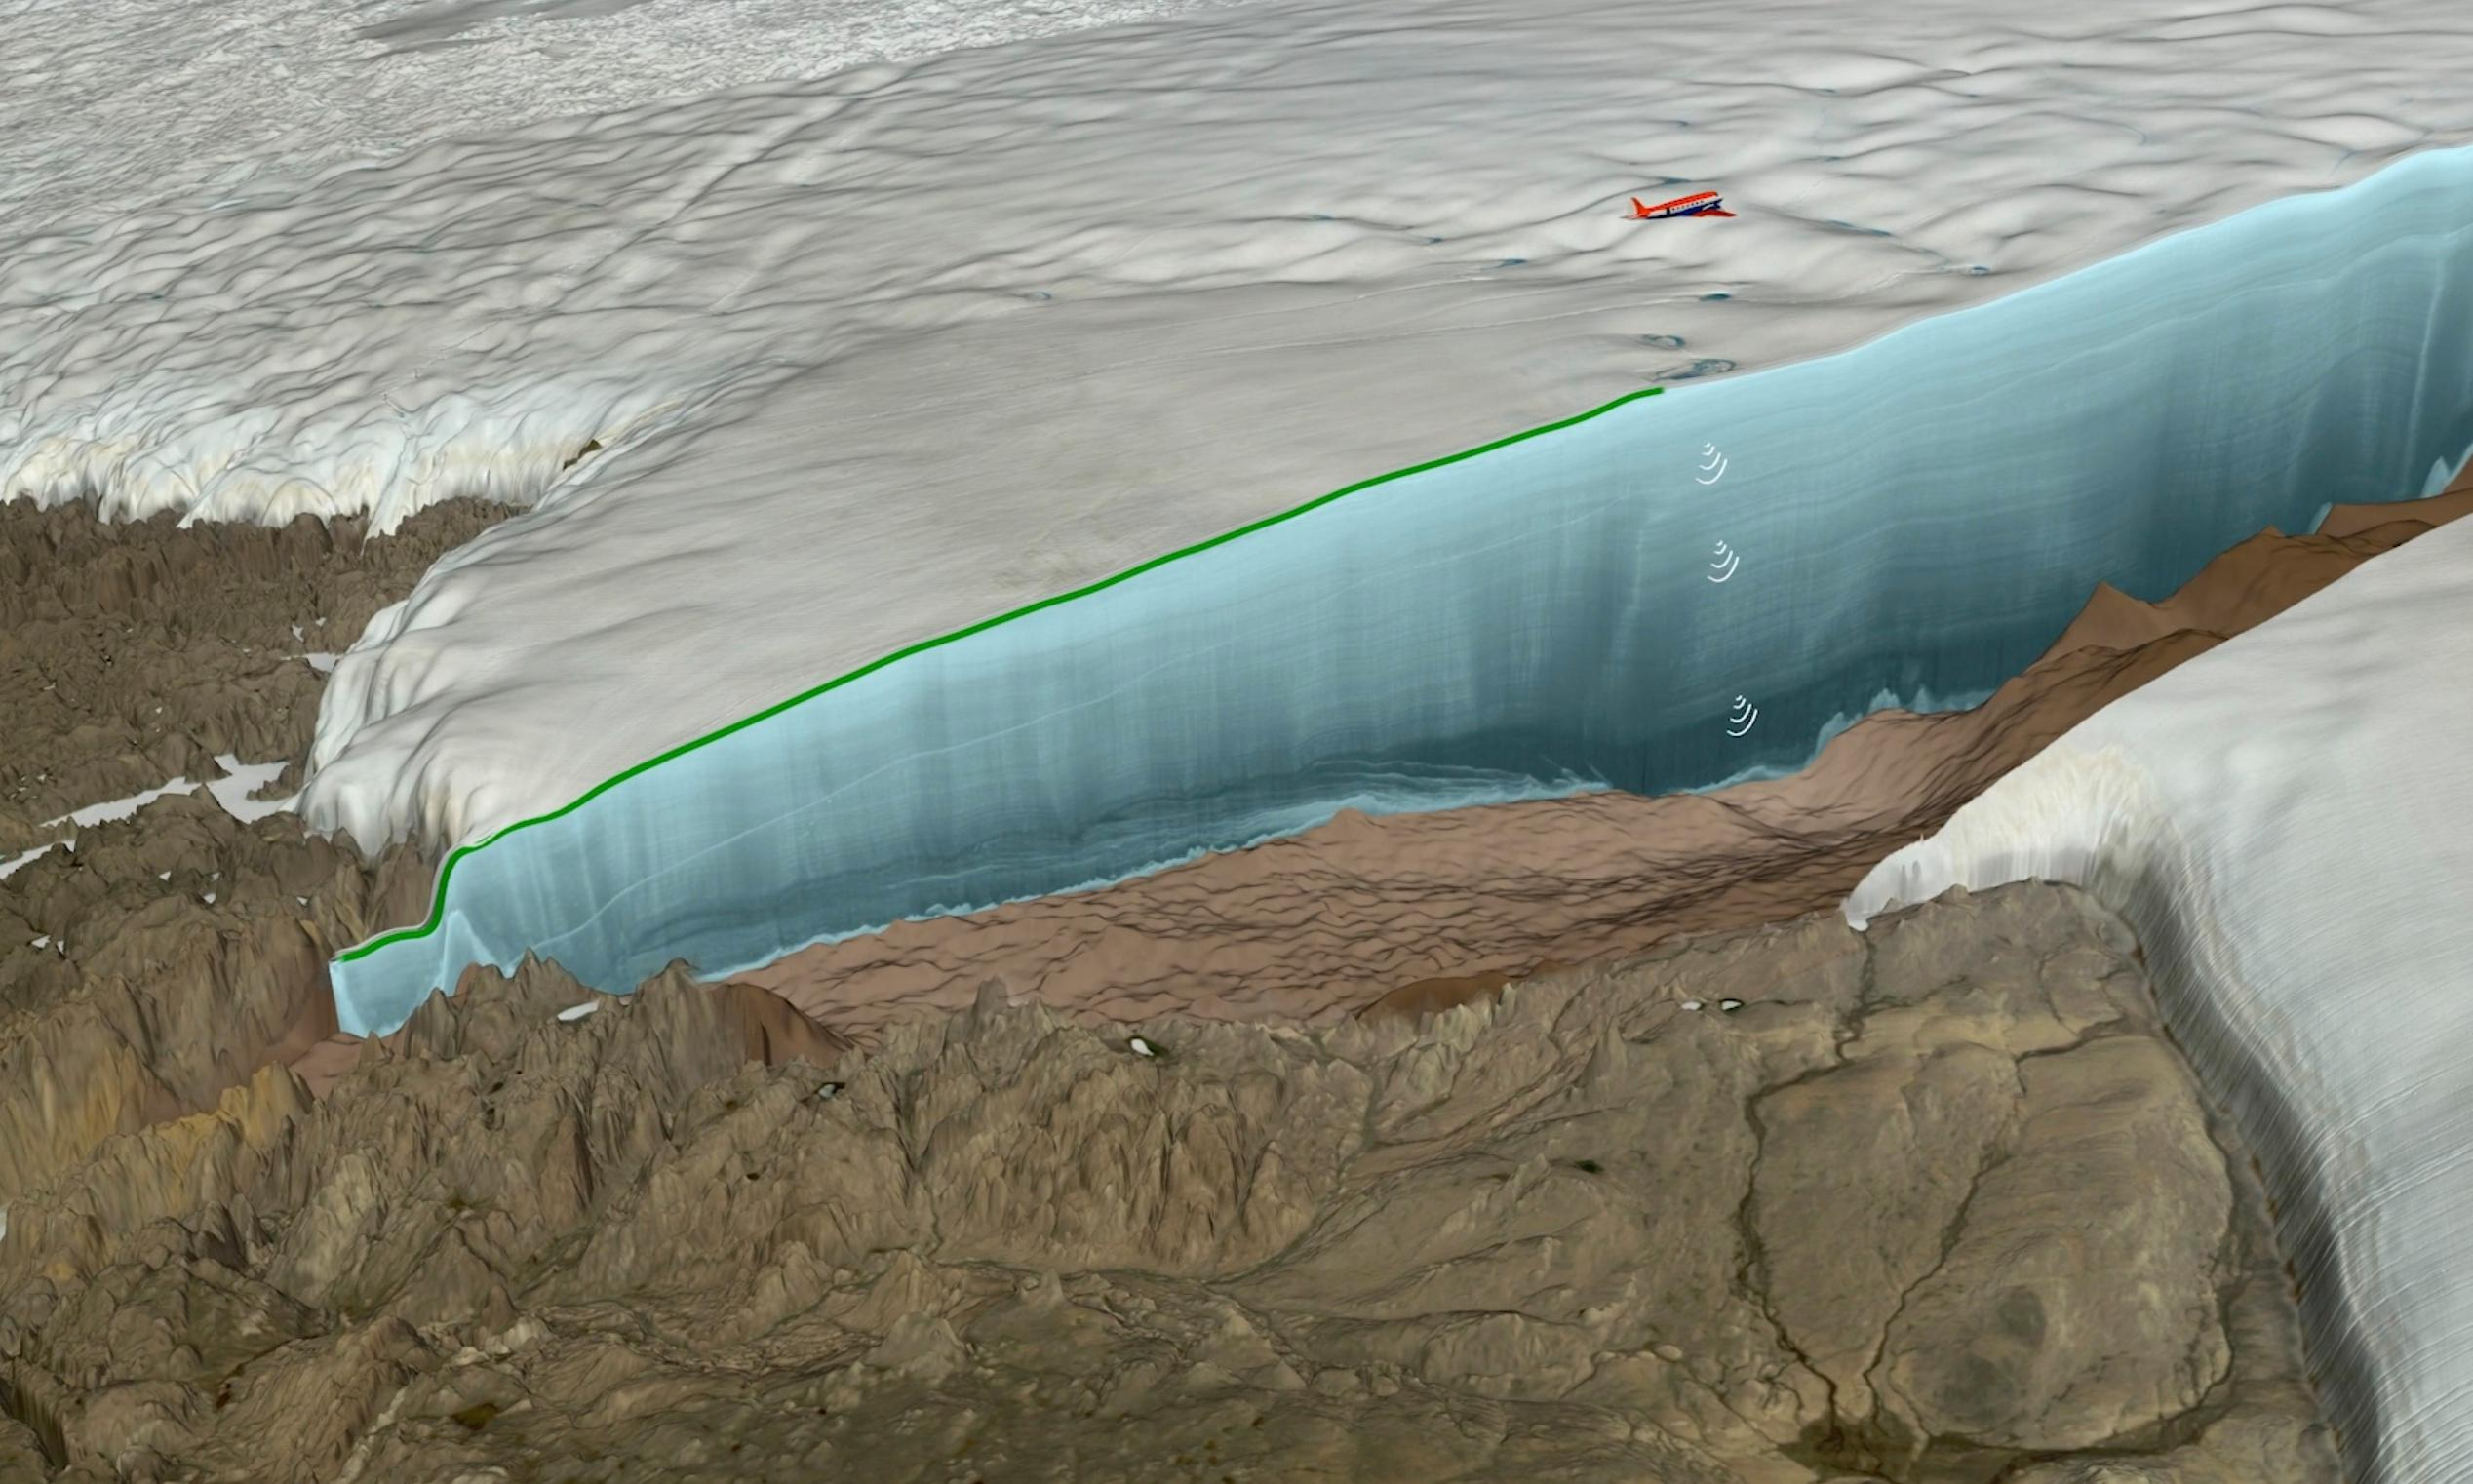 Impact crater 19 miles wide found beneath Greenland glacier